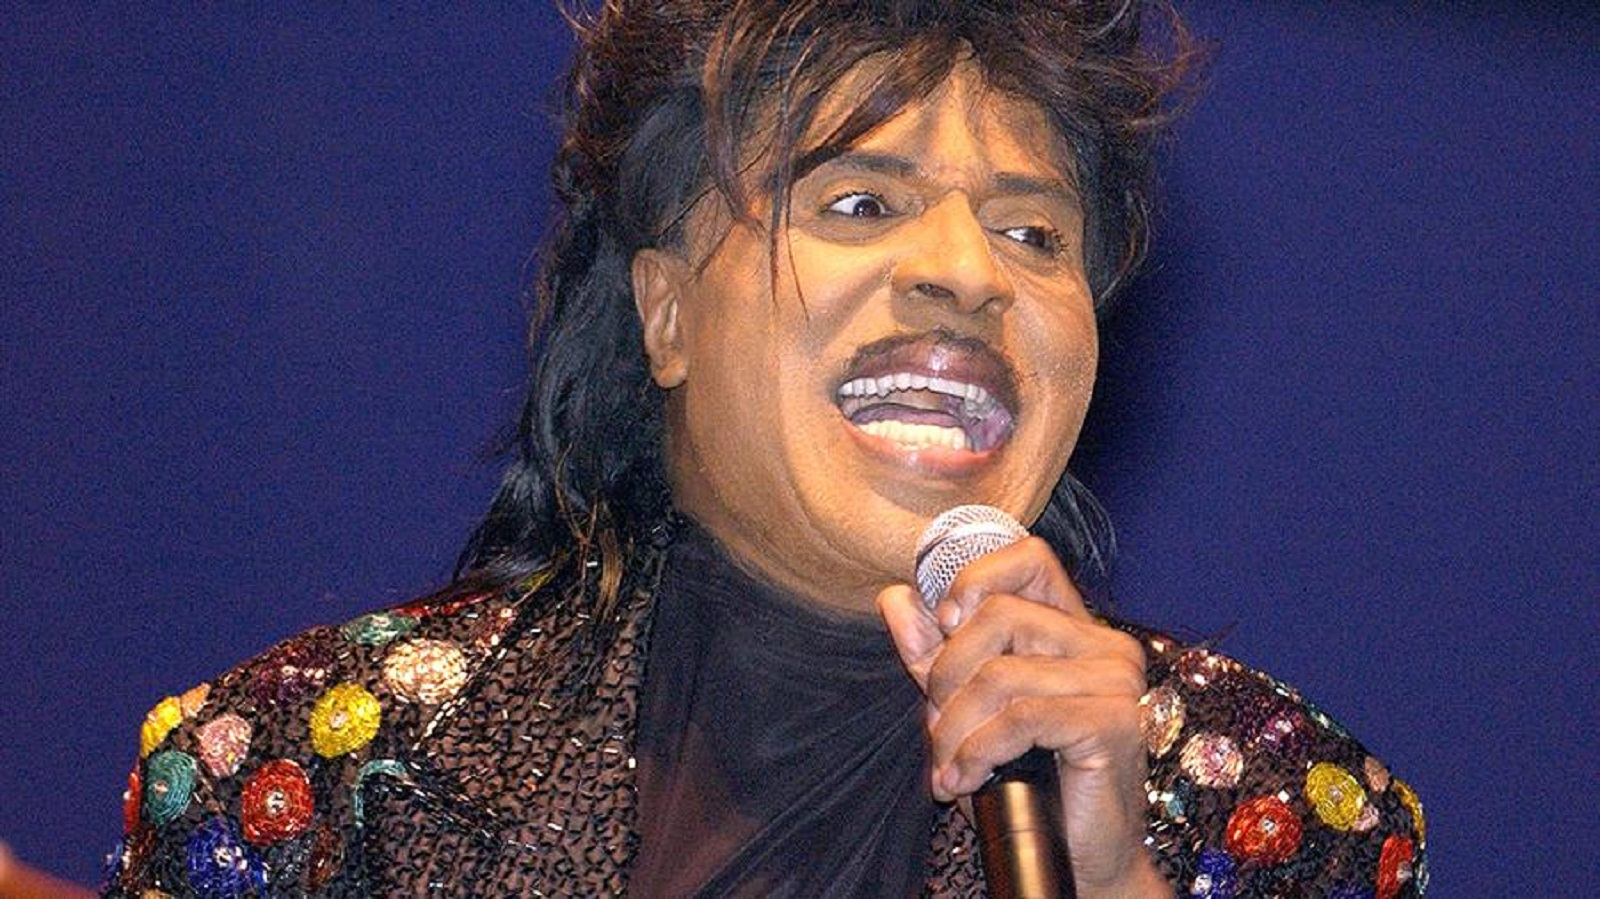 In the United States, the singer and pianist, one of the pioneers of rock and roll, little Richard (real name-Richard Wayne Penniman), has died. He was 87Rock and roll pioneer little Richard has died in the US